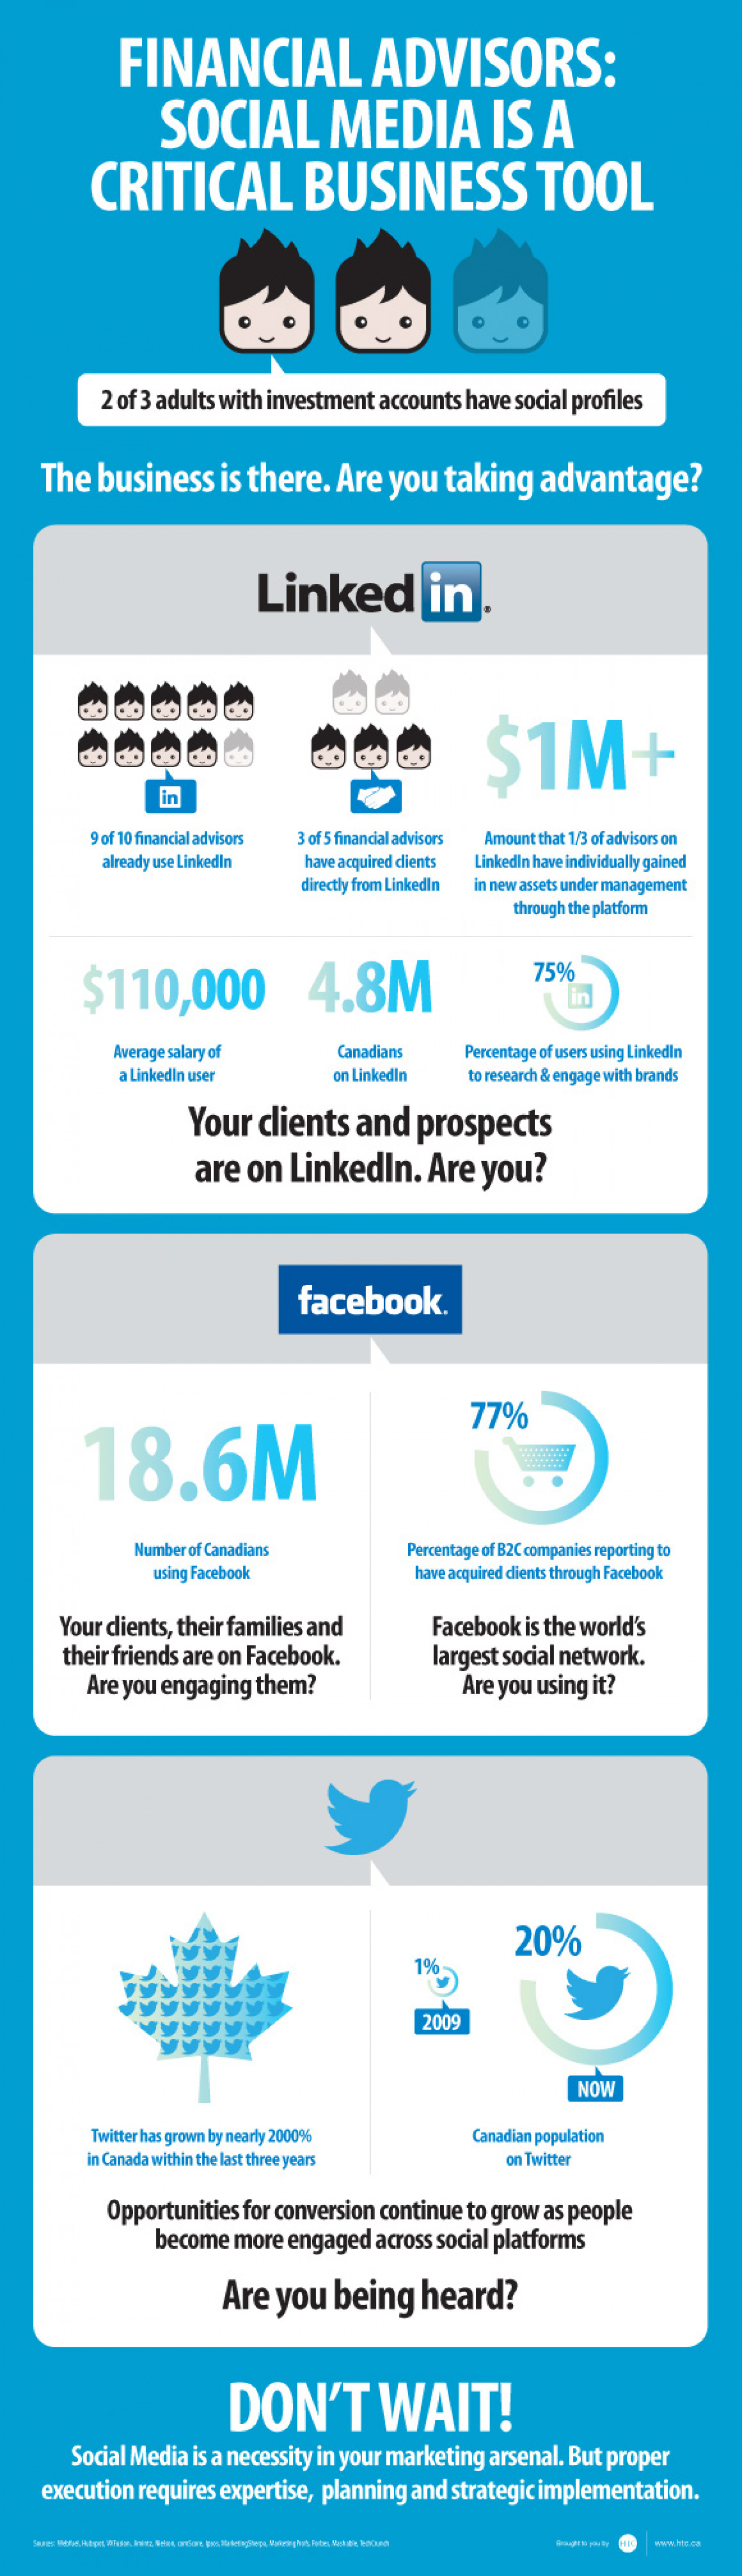 Financial Advisors: Social Media is a Critical Business Tool Infographic